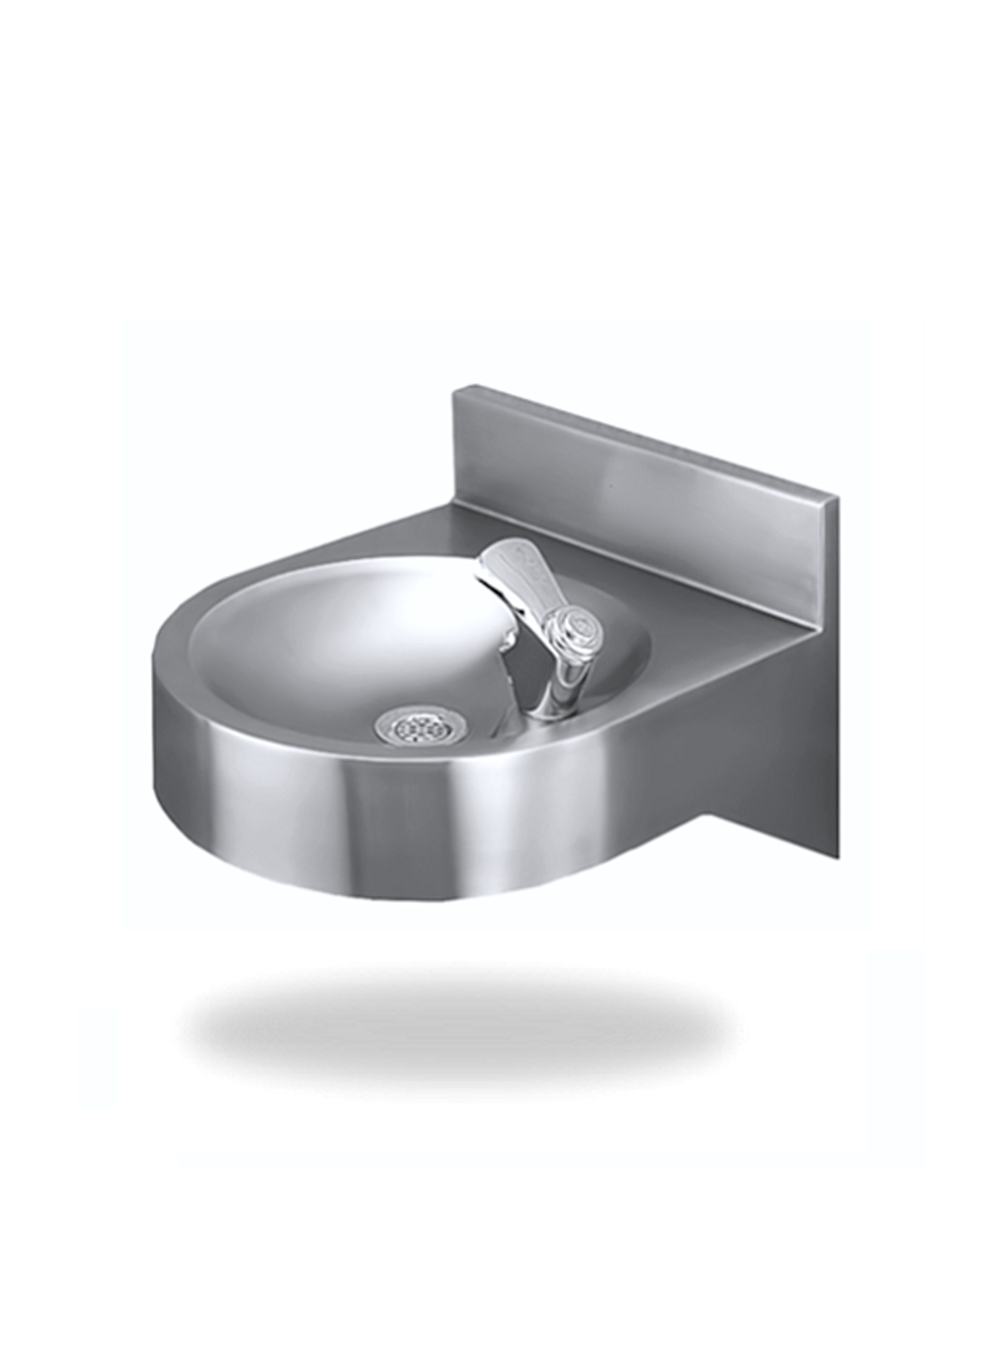 Dwf1 wall mounted drinking fountain - Wall mounted water feature ...